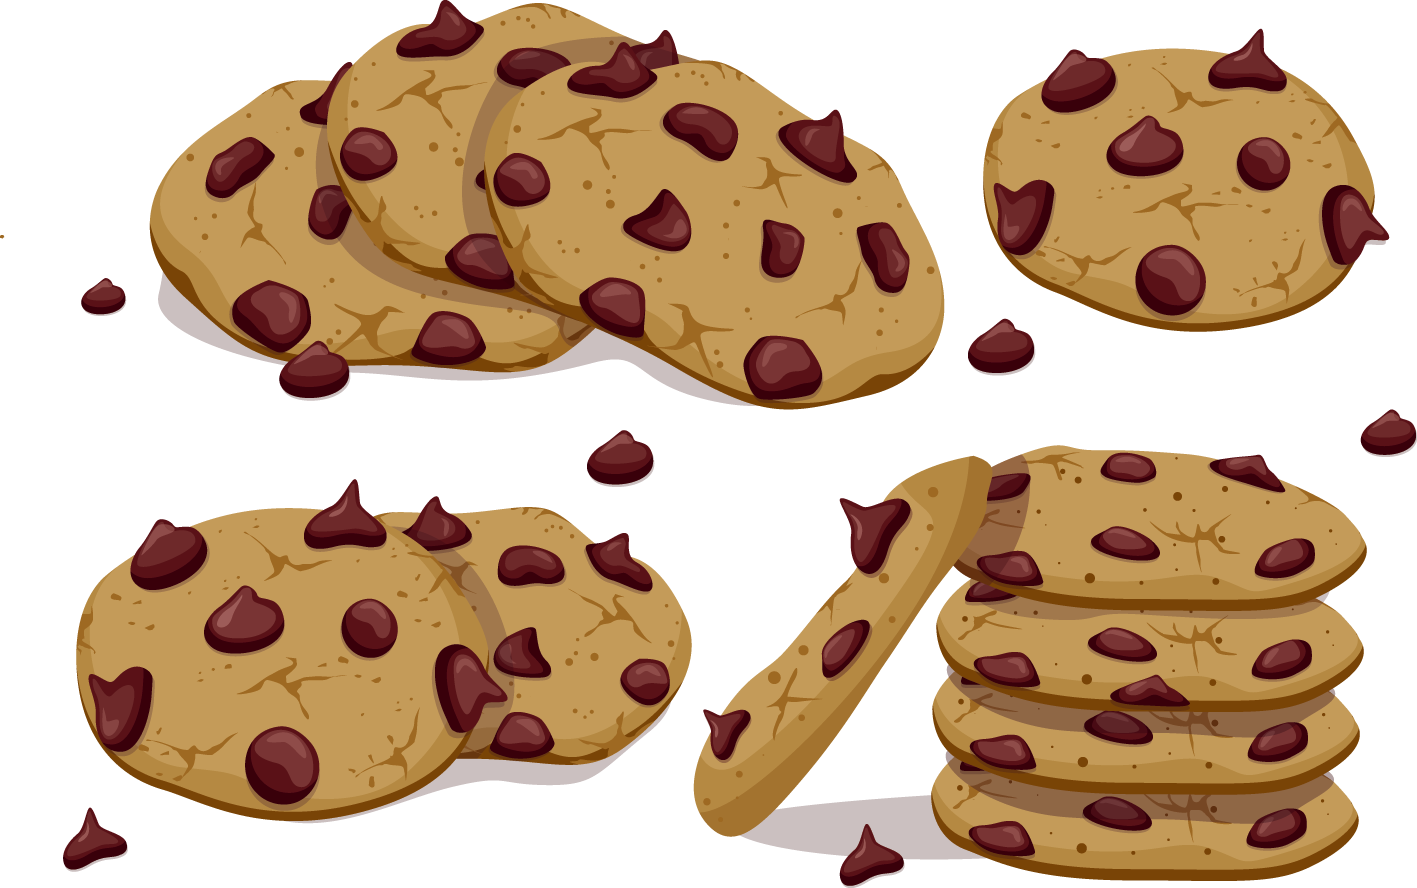 Cookies clipart vector clip transparent download HD Chocolate Chip Cookie - Cookies Vector Png Transparent PNG Image ... clip transparent download